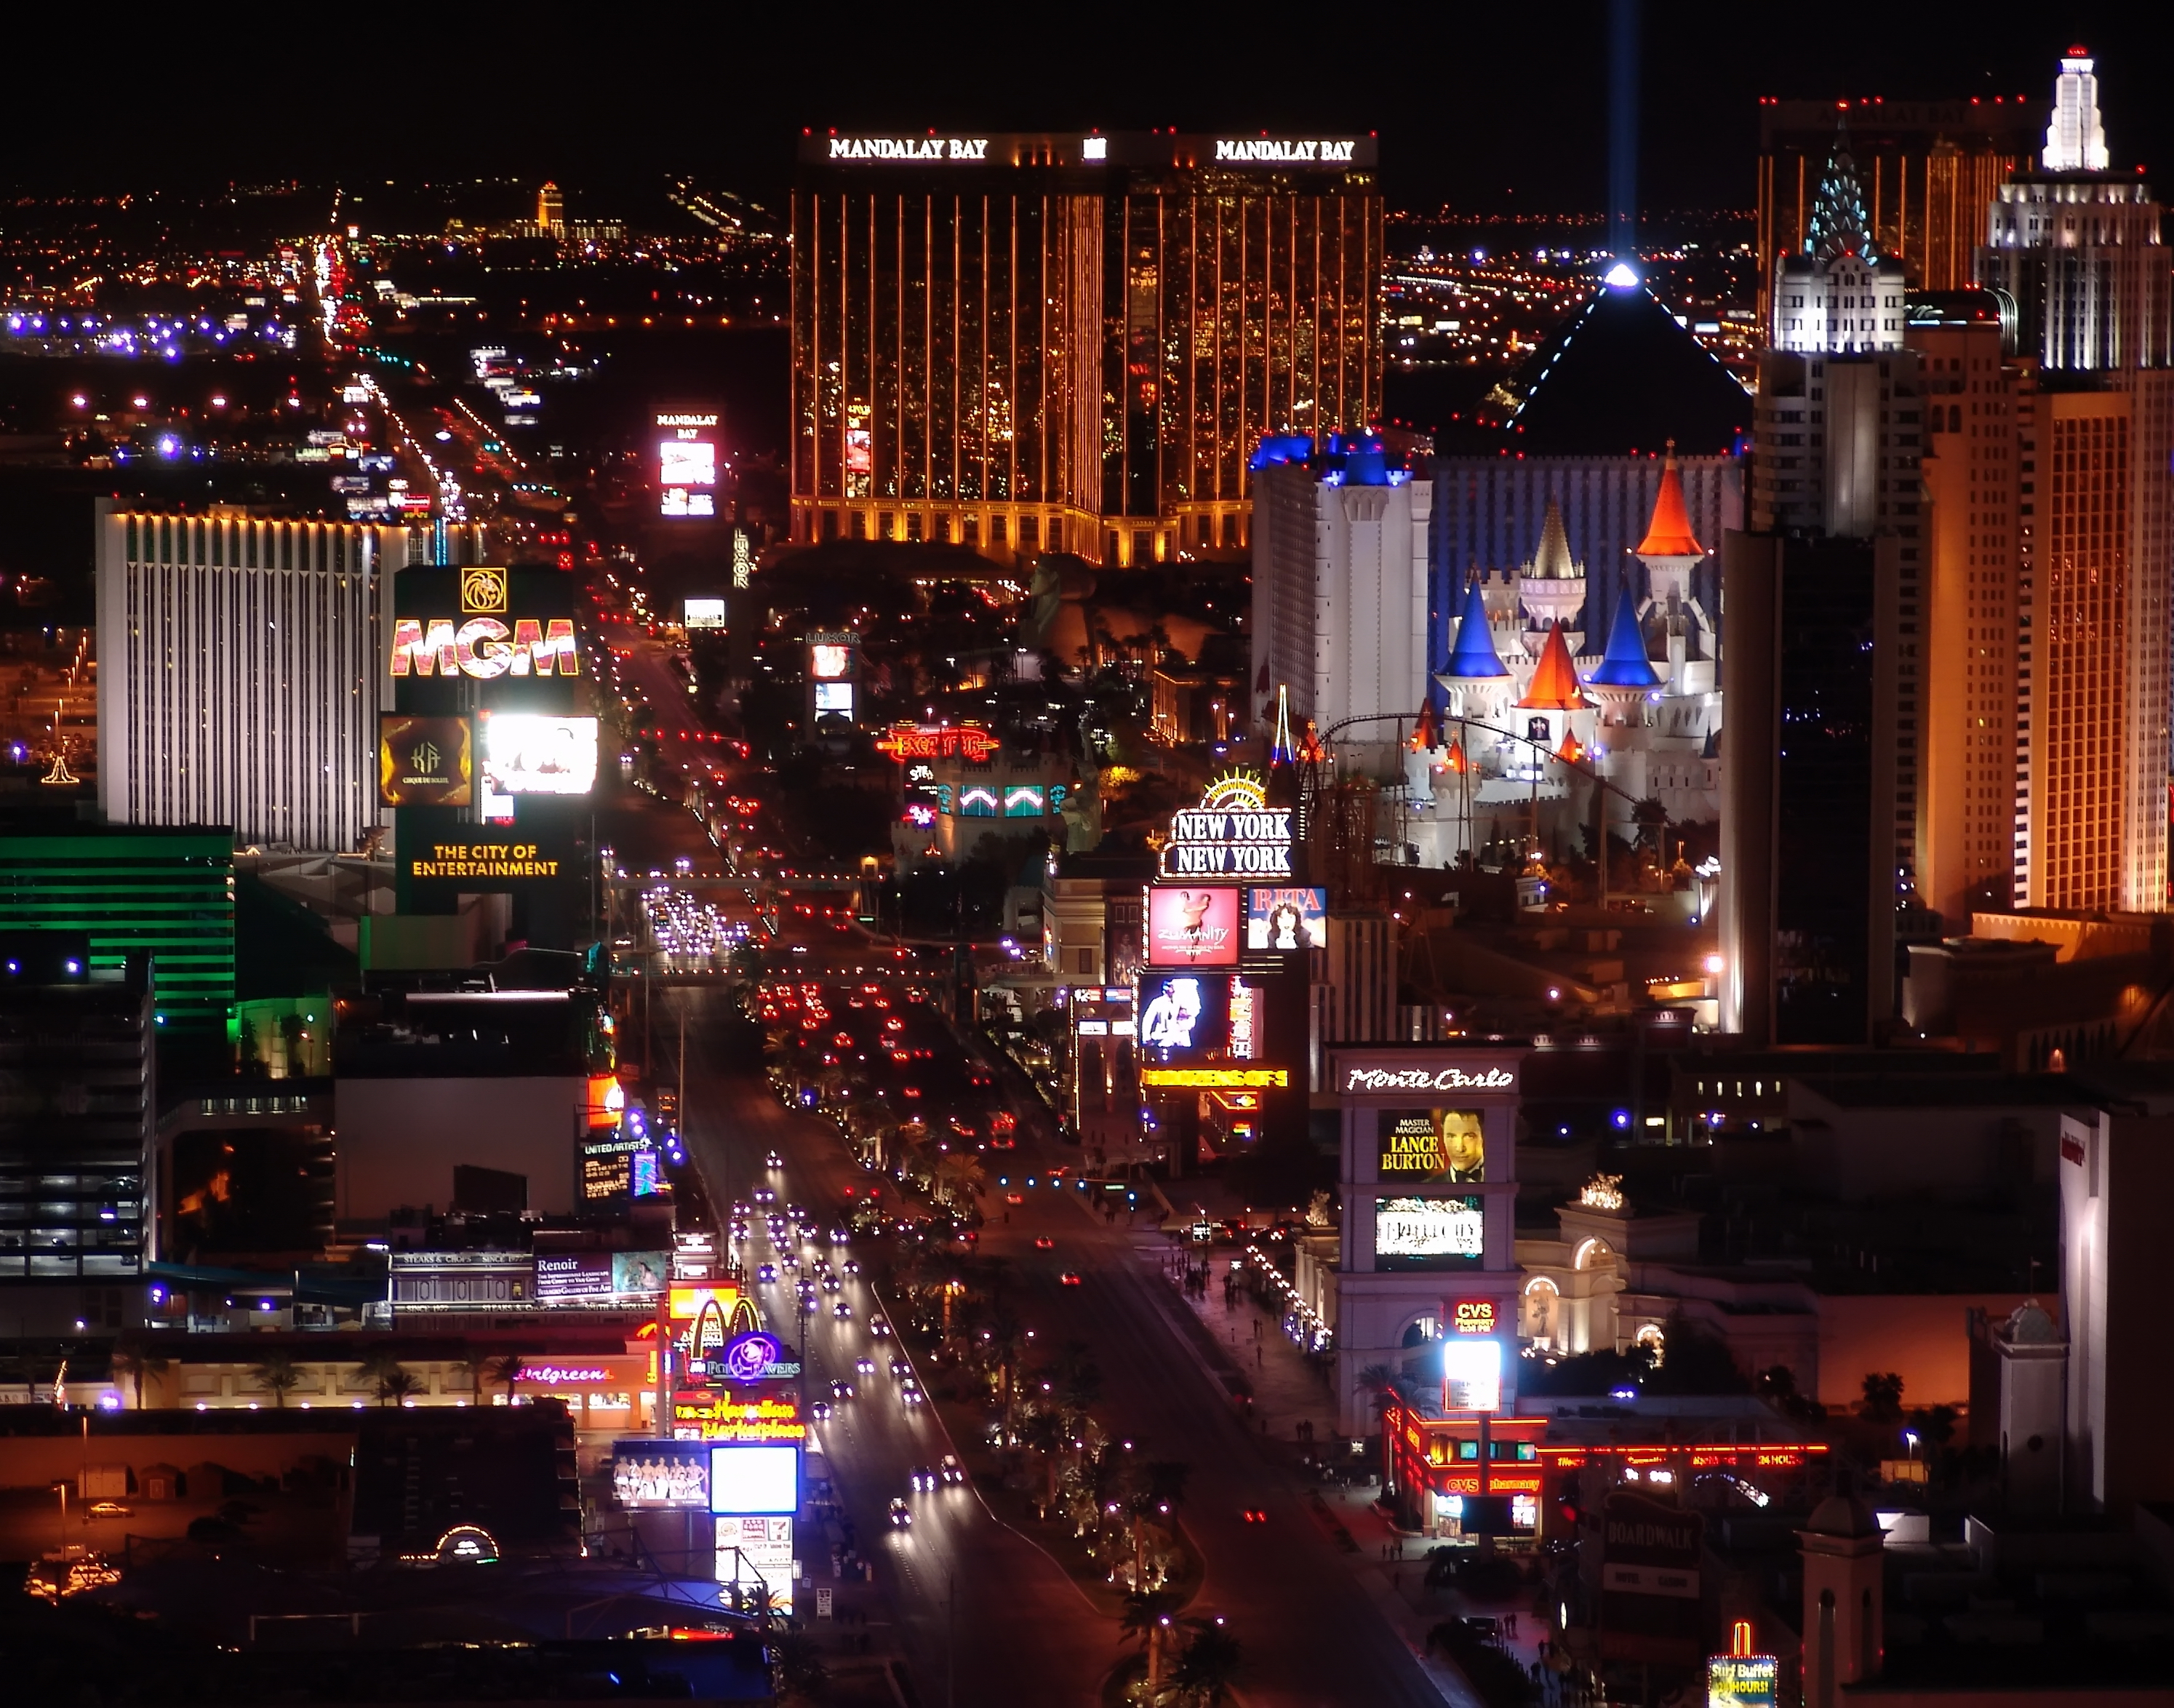 http://blog.blissker.com/wp-content/uploads/2016/08/bigstock-Las-Vegas-Night-Panorama-4323463.jpg